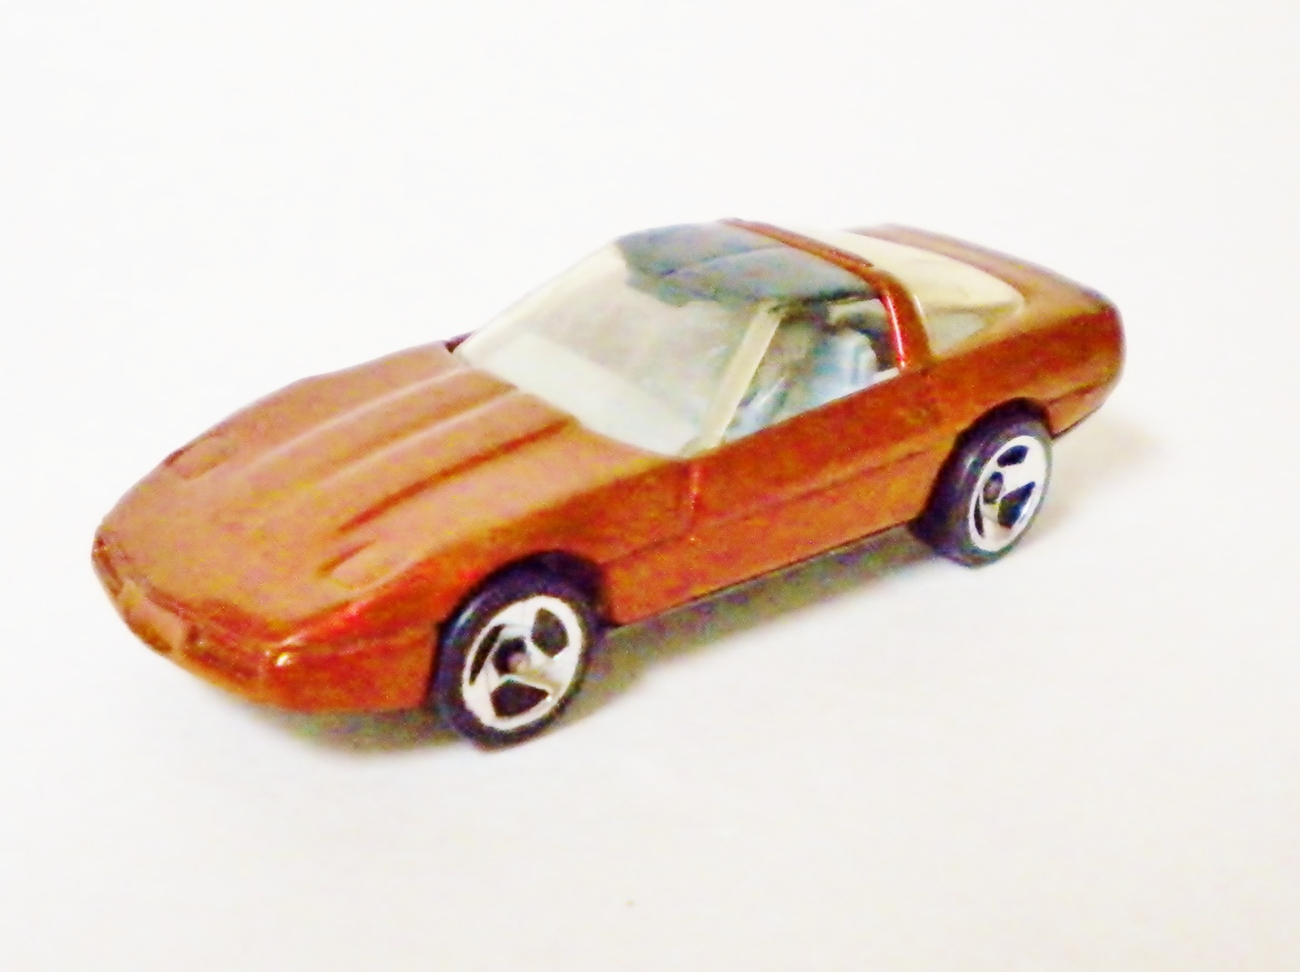 Hot Wheels - 1996 80's Corvette - Dark Metallic Red - Loose